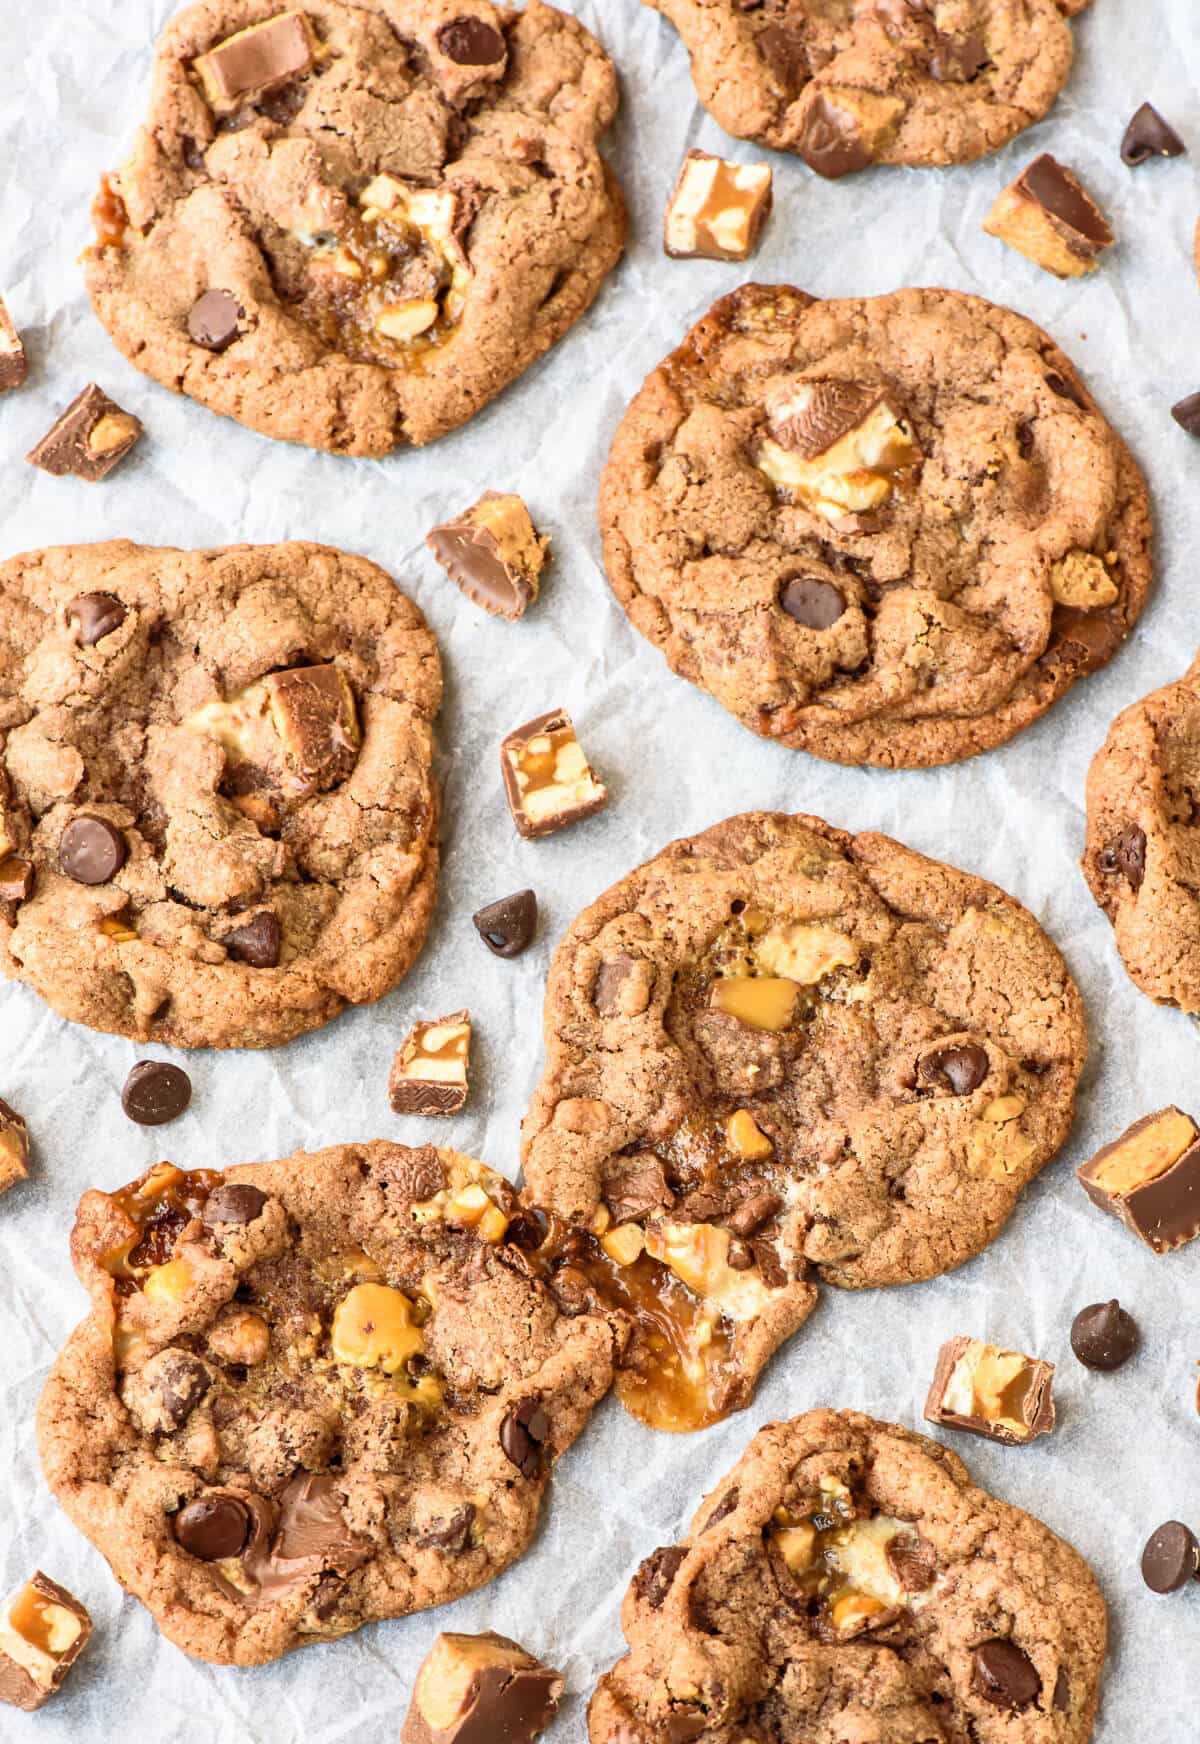 Peanut Butter Snickers Cookies. Soft and chewy with melting puddles of caramel and chocolate. Even better than a candy bar and perfect for using leftover candy too!